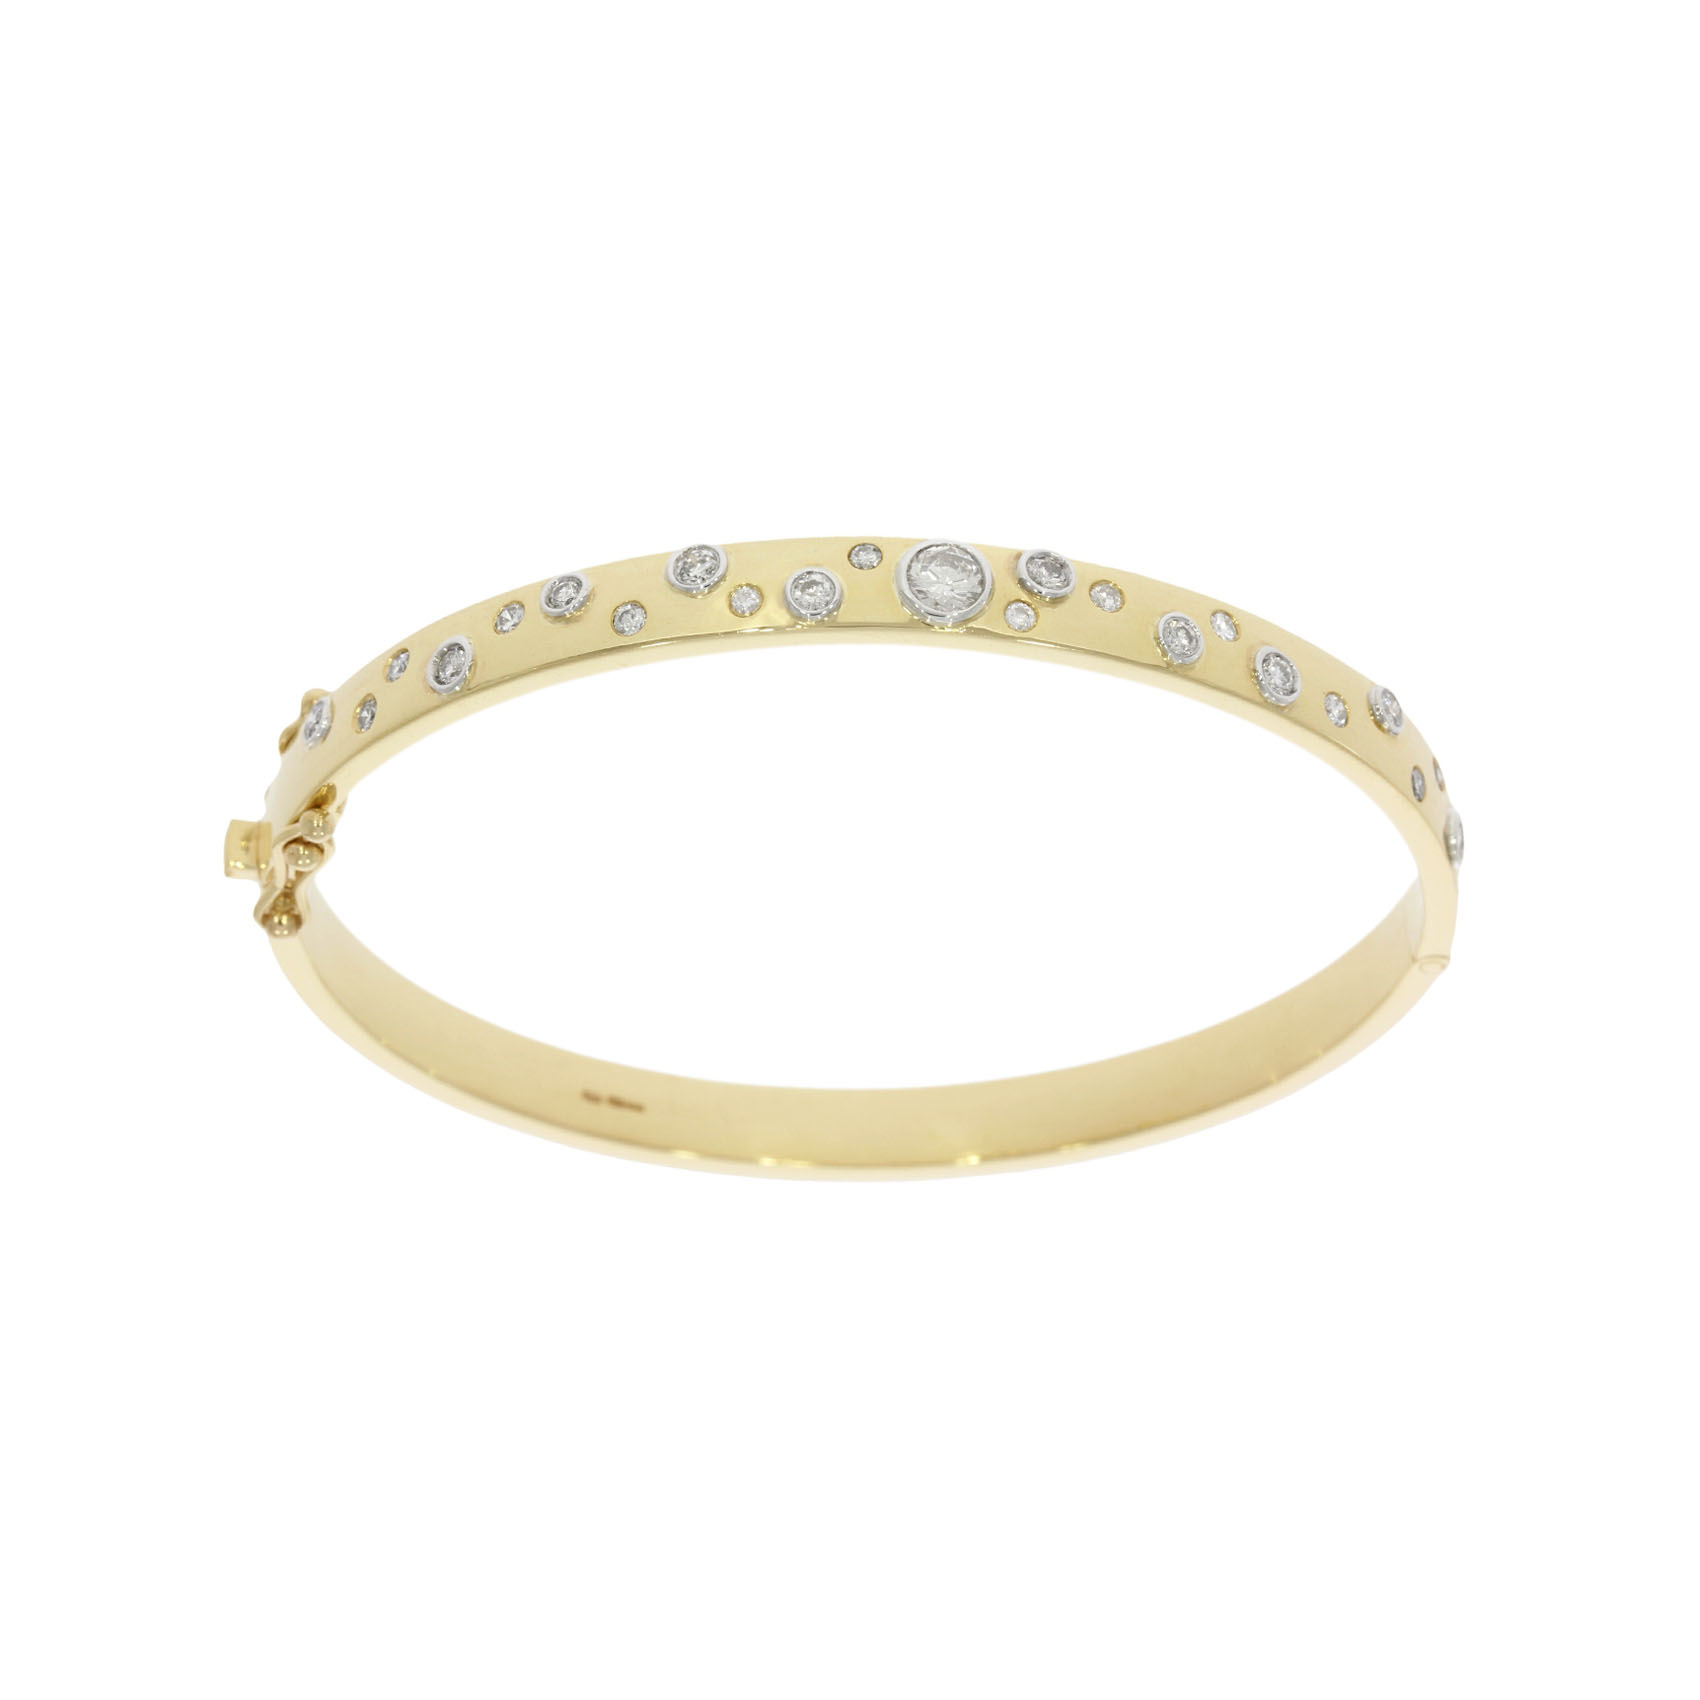 A yellow gold and diamond encrusted hinged bangle bracelet